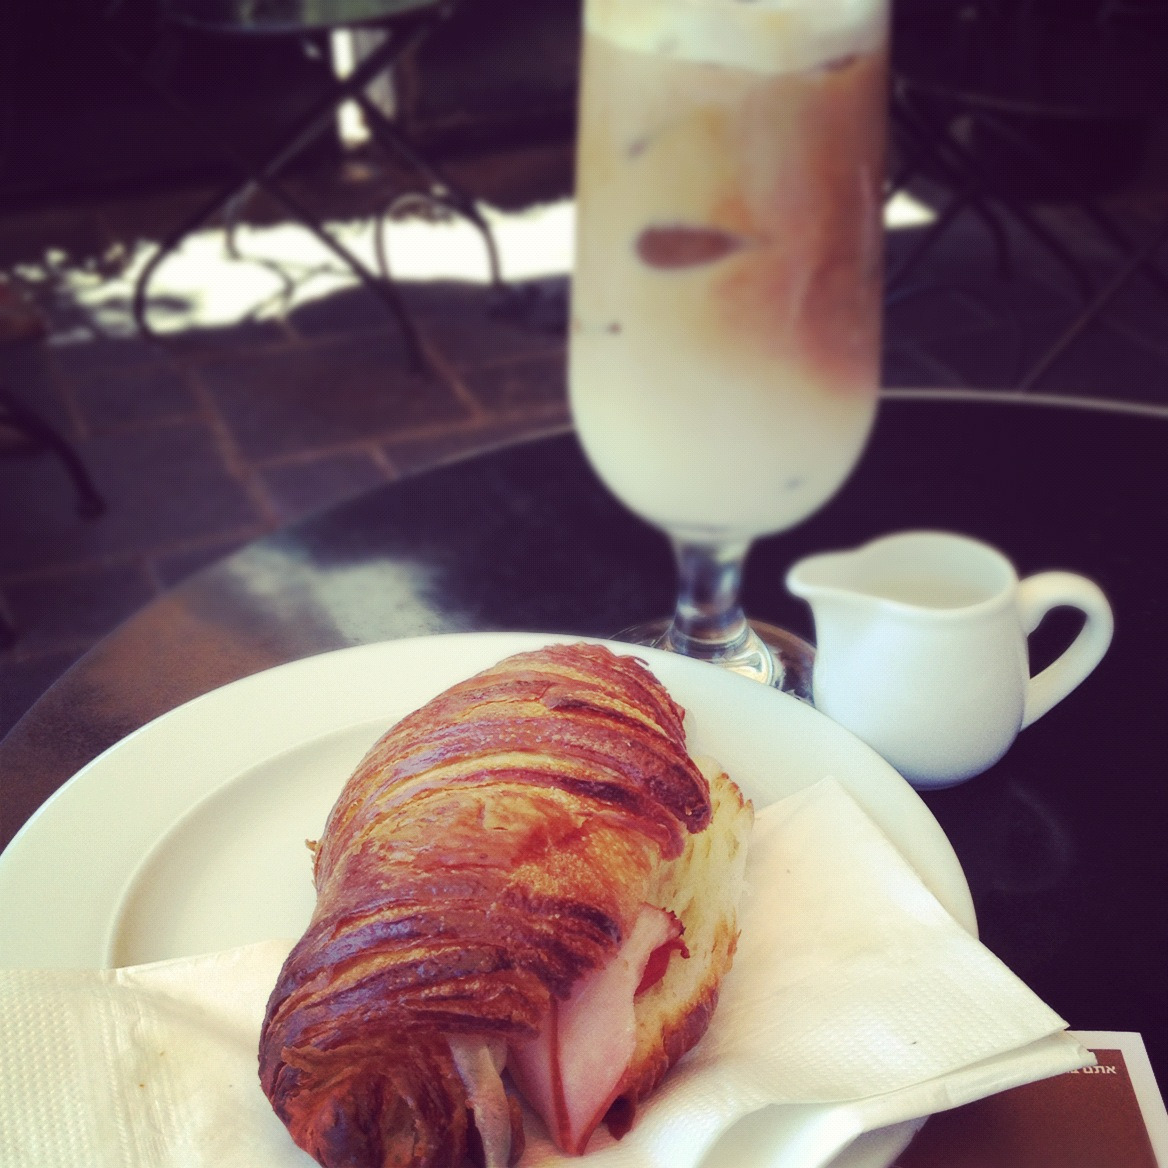 Lunch @Bakery - toasted croissant with ham and cheese and a side of iced cappuccino.